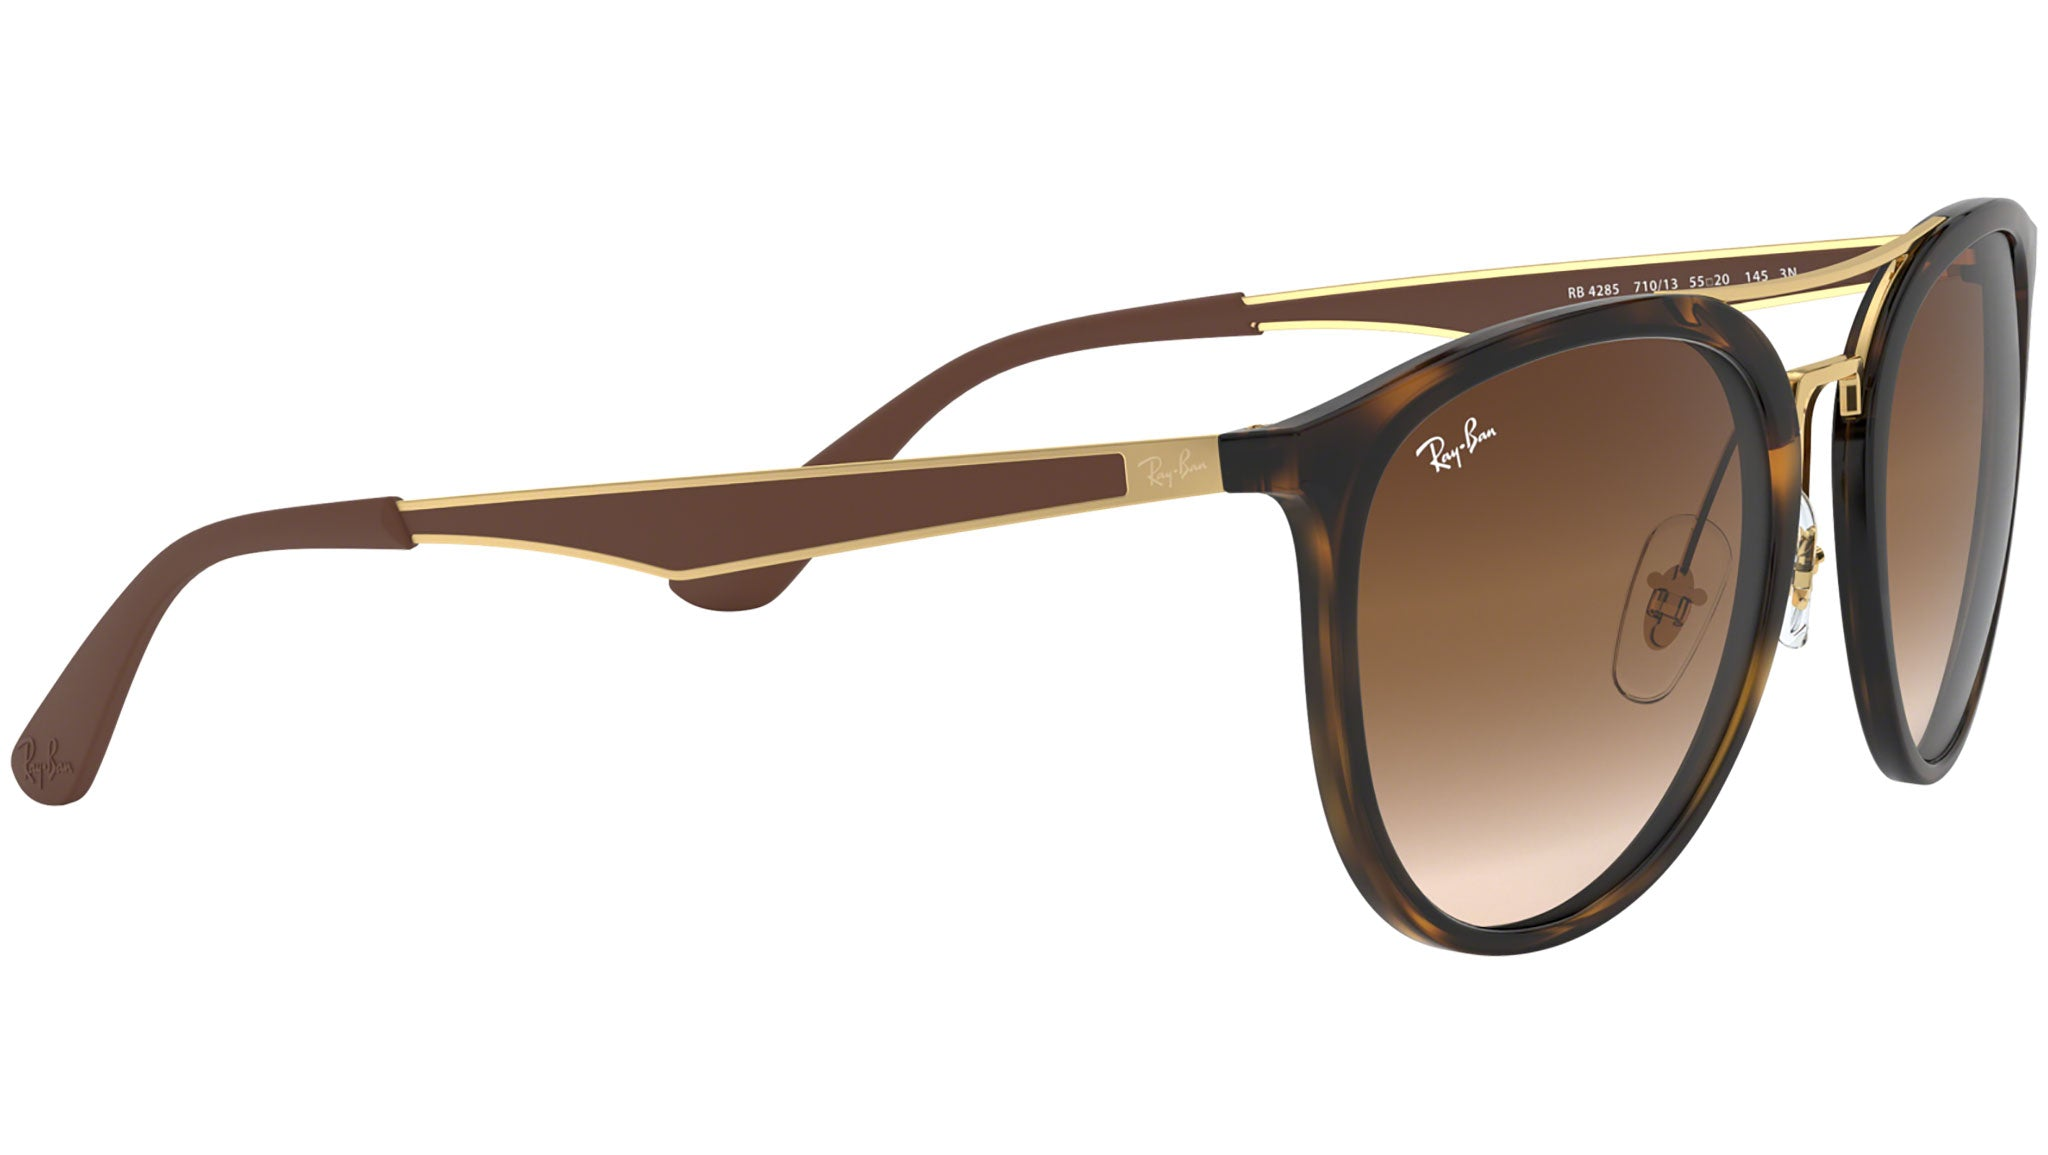 RB4285 tortoise and brown